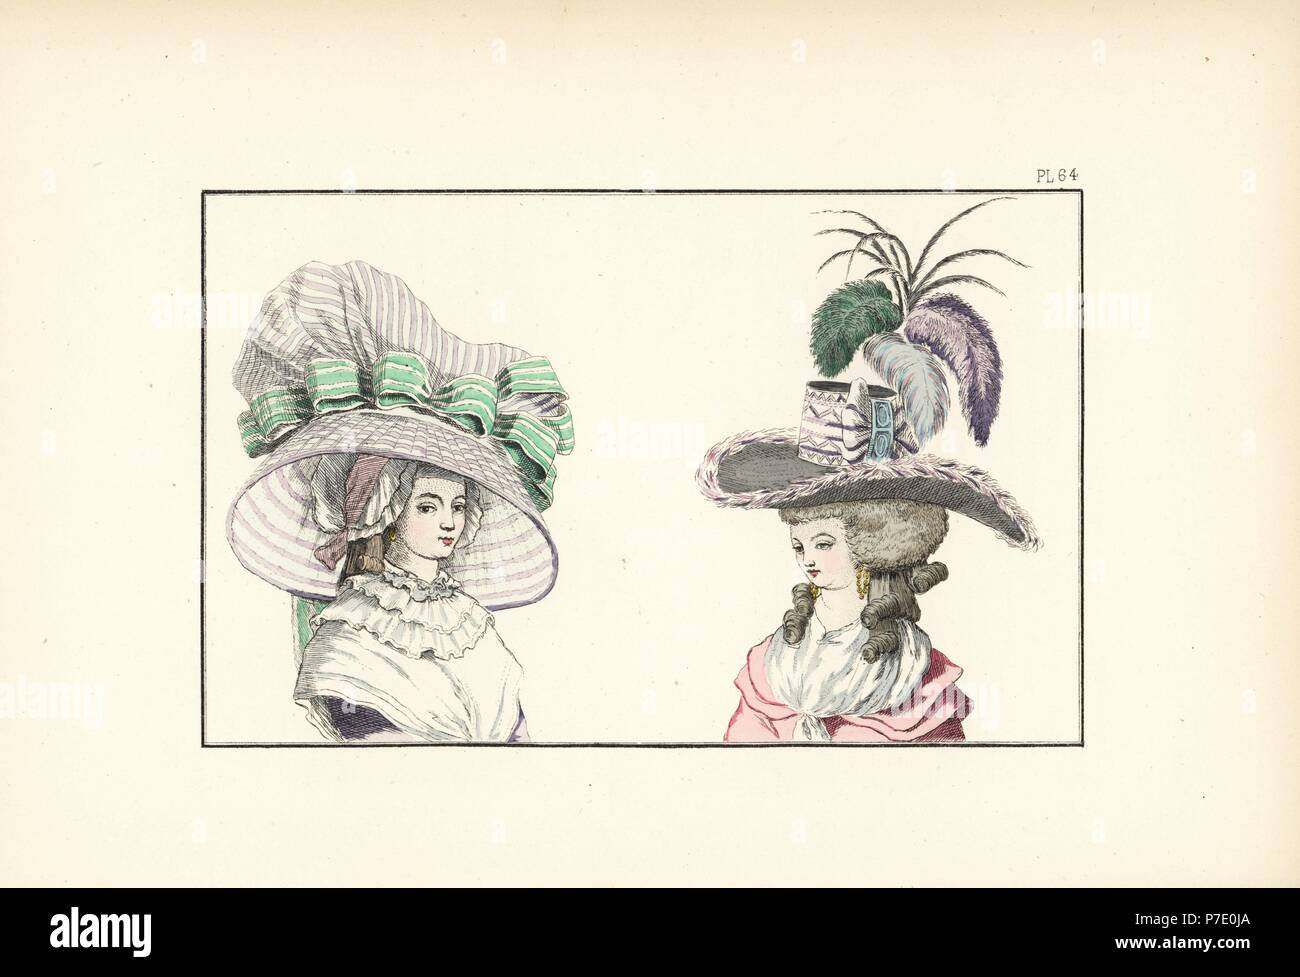 Woman in large striped bonnet-hat over a gauze night cap, and woman in black felt hat with feather trim, ribbons and plumes. Handcoloured lithograph from Fashions and Customs of Marie Antoinette and her Times, by Le Comte de Reiset, Paris, 1885. The journal of Madame Eloffe, dressmaker and linen-merchant to the Queen and ladies of the court. - Stock Image